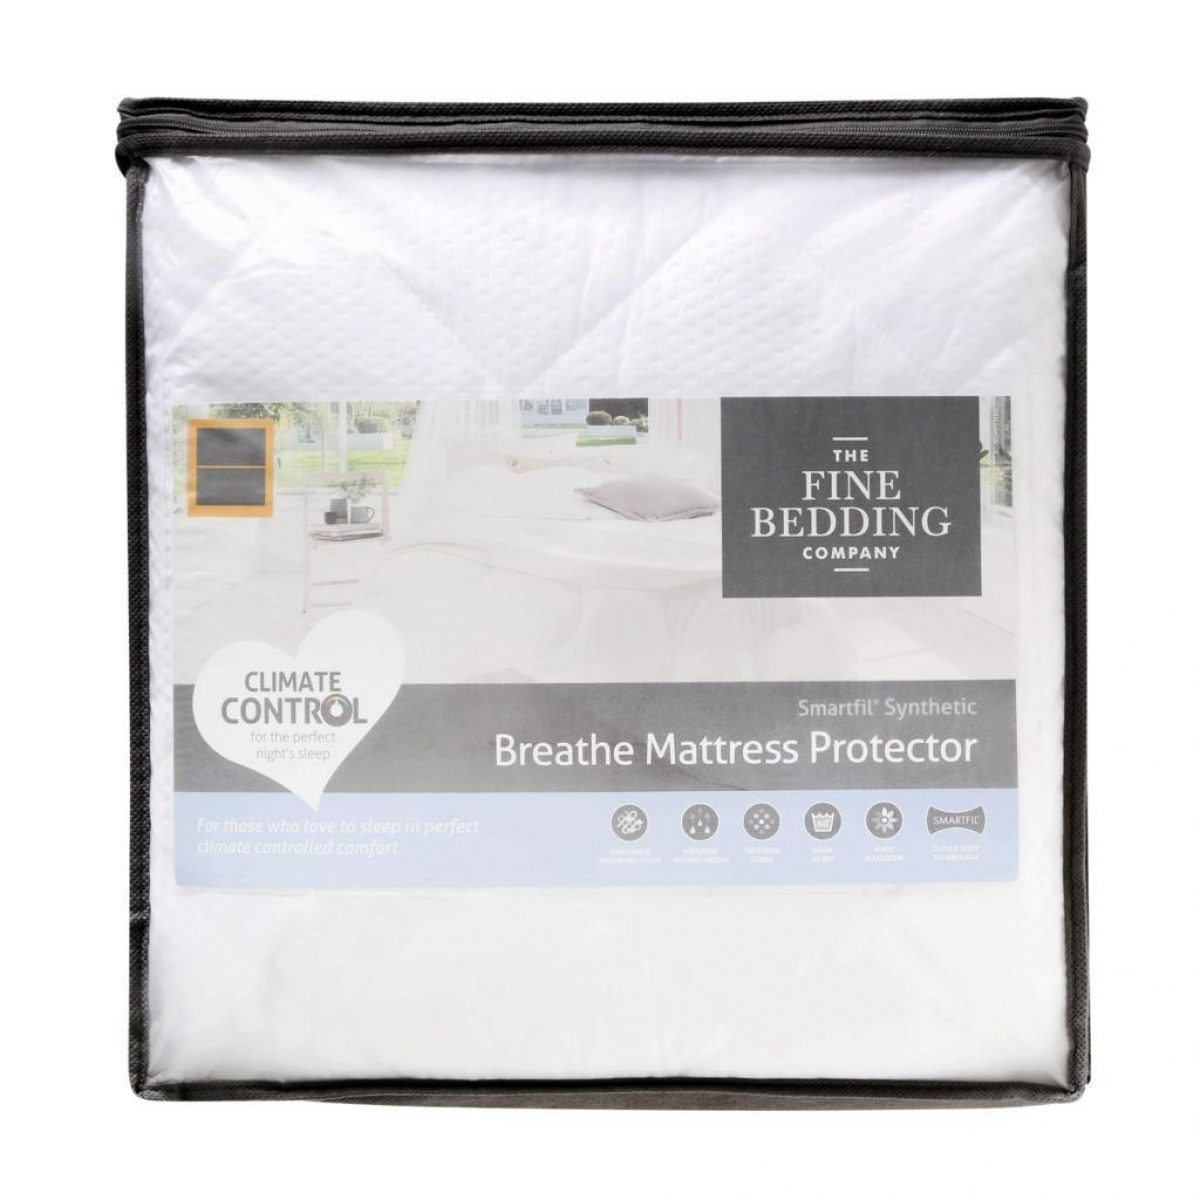 Fine Bedding Breathe Mattress Protector Packed 1024x1024